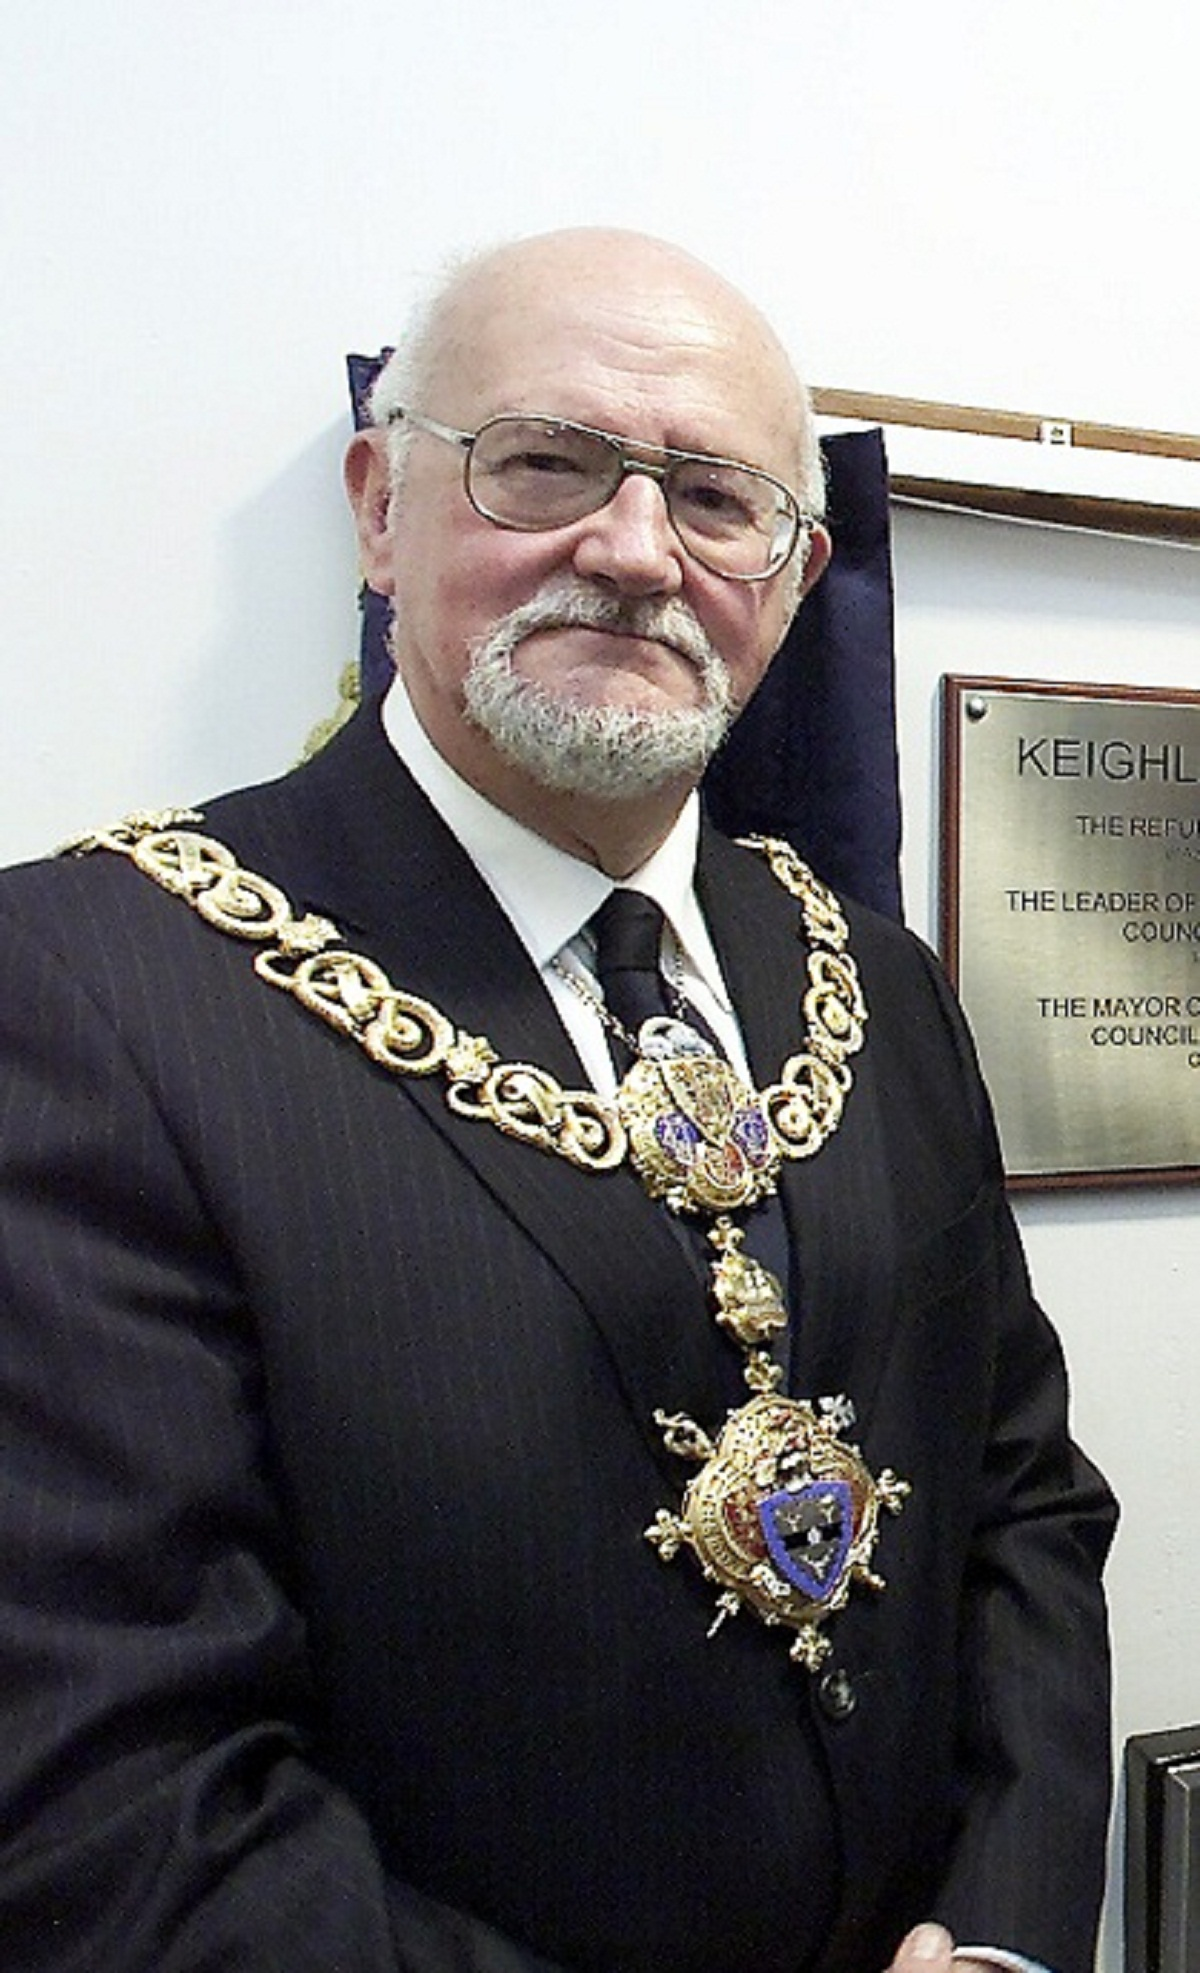 Councillor Graham Mitchell during his previous stint as Keighley Mayor